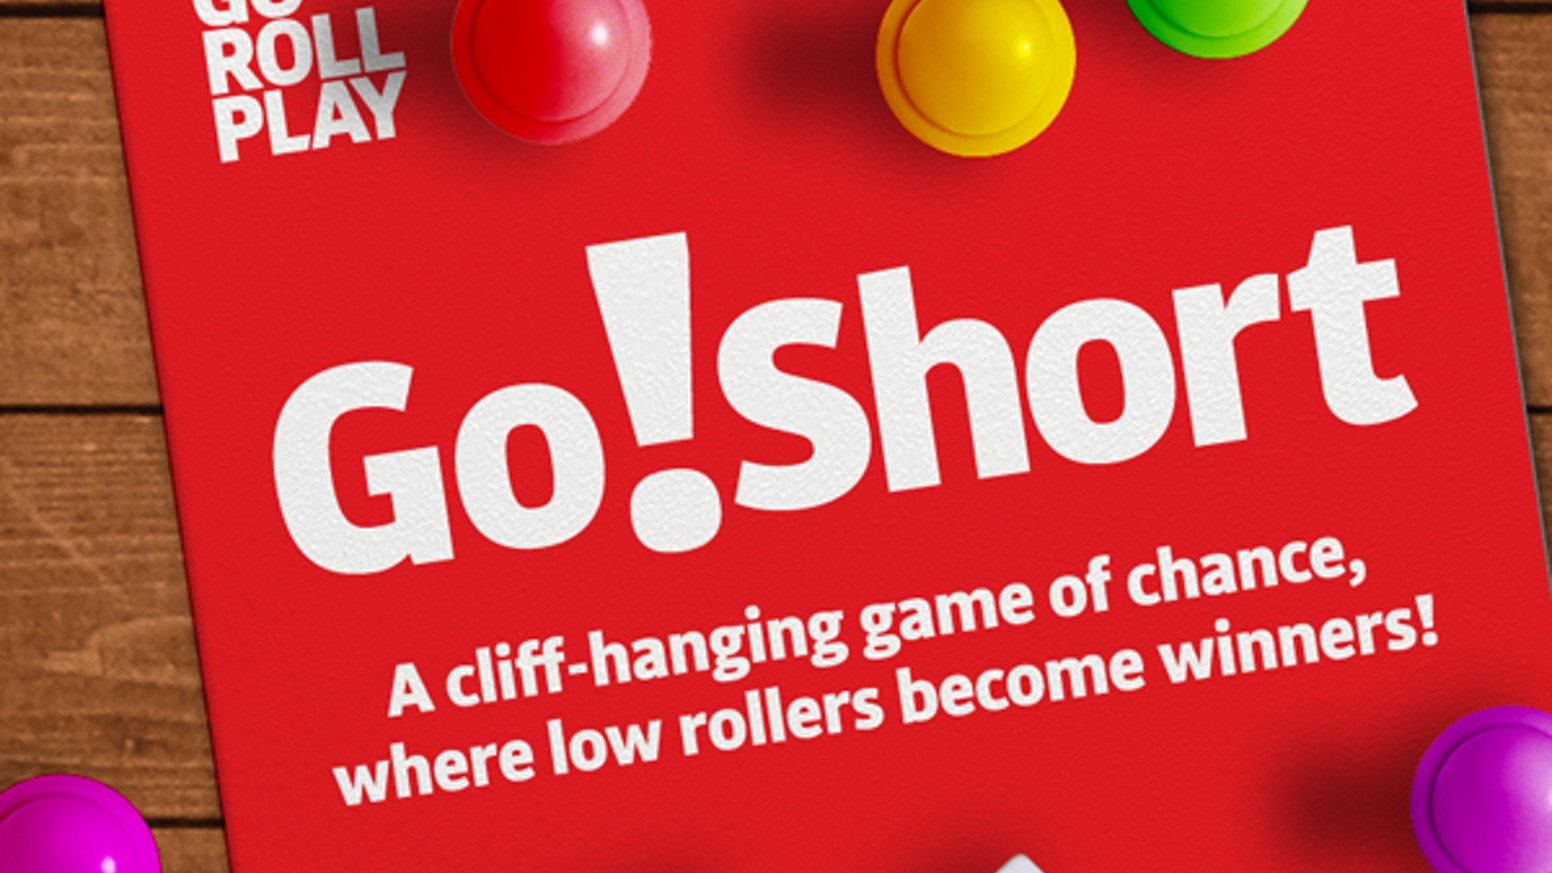 Kill some time with this new and original cliff-hanging game of chance. Compact, simple, fast and fun for the kids, friends and family.